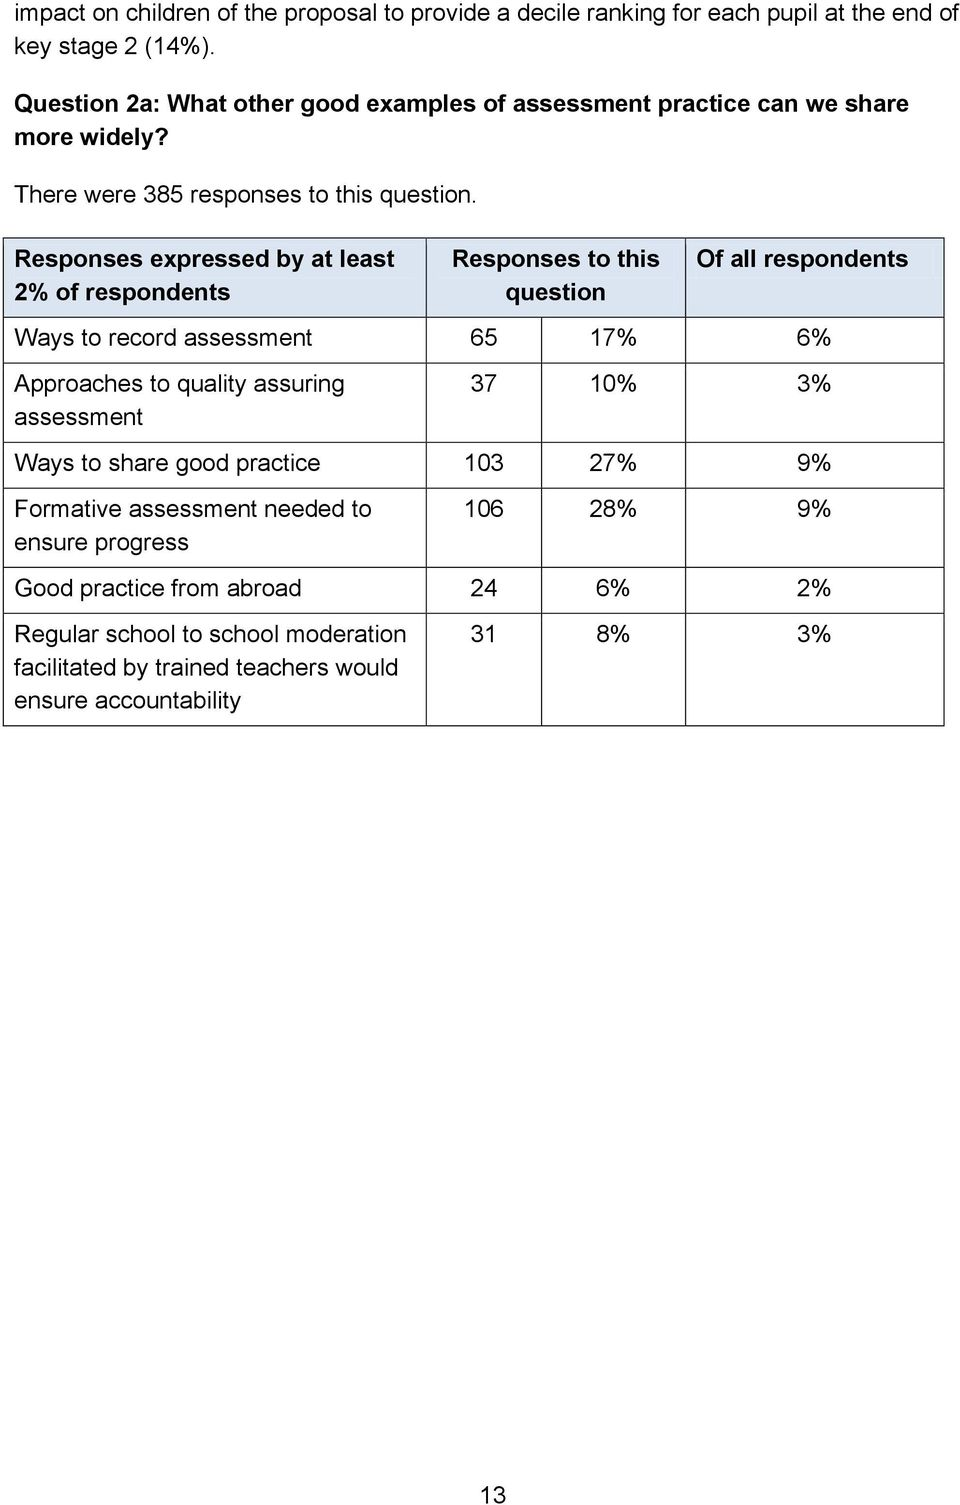 Responses expressed by at least 2% of respondents Ways to record assessment 65 17% 6% Approaches to quality assuring assessment 37 10% 3% Ways to share